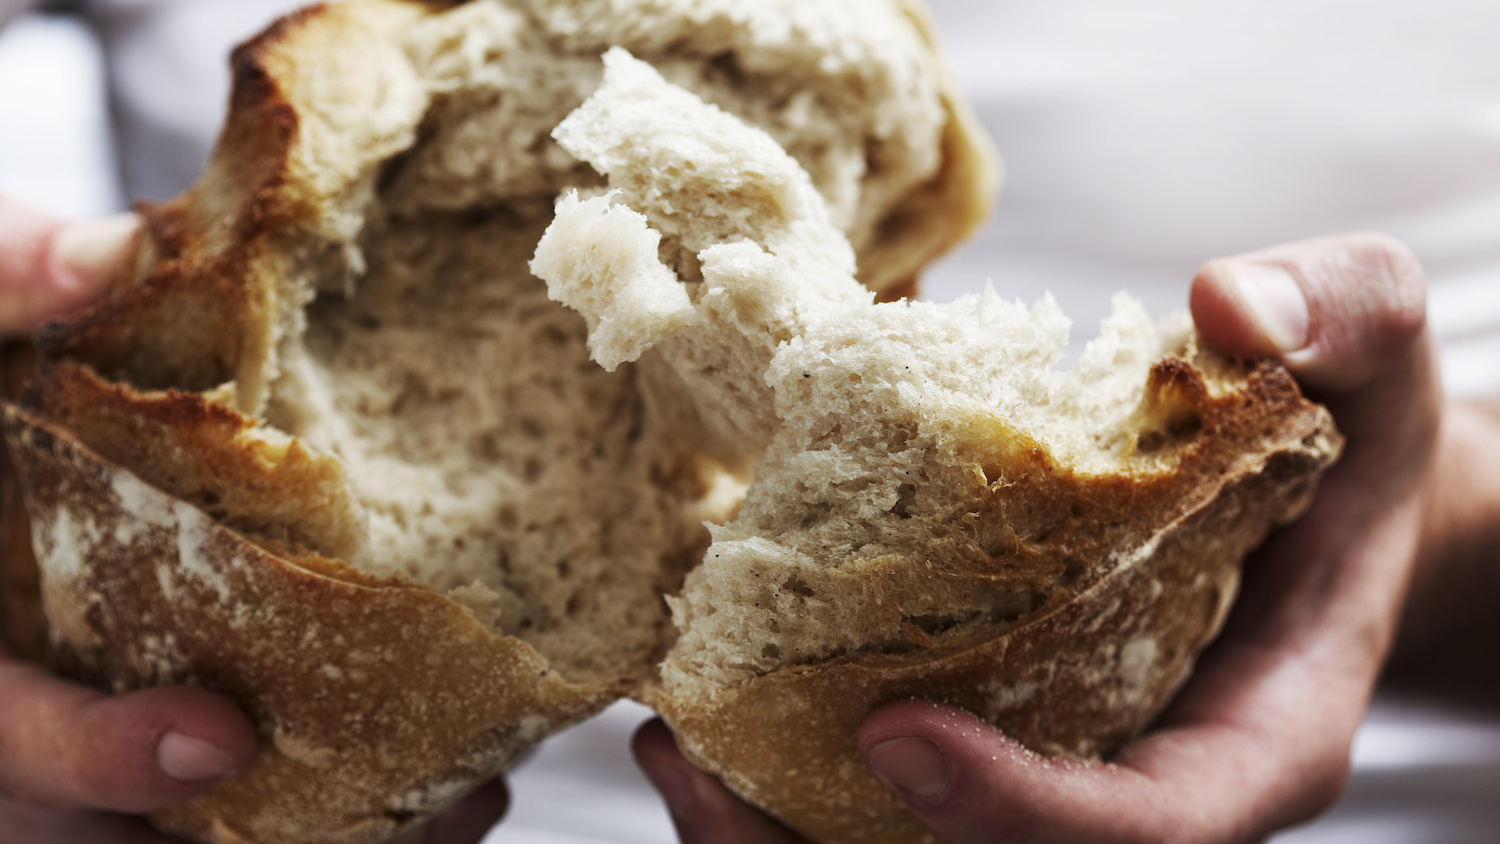 Cardiologist recommended bread